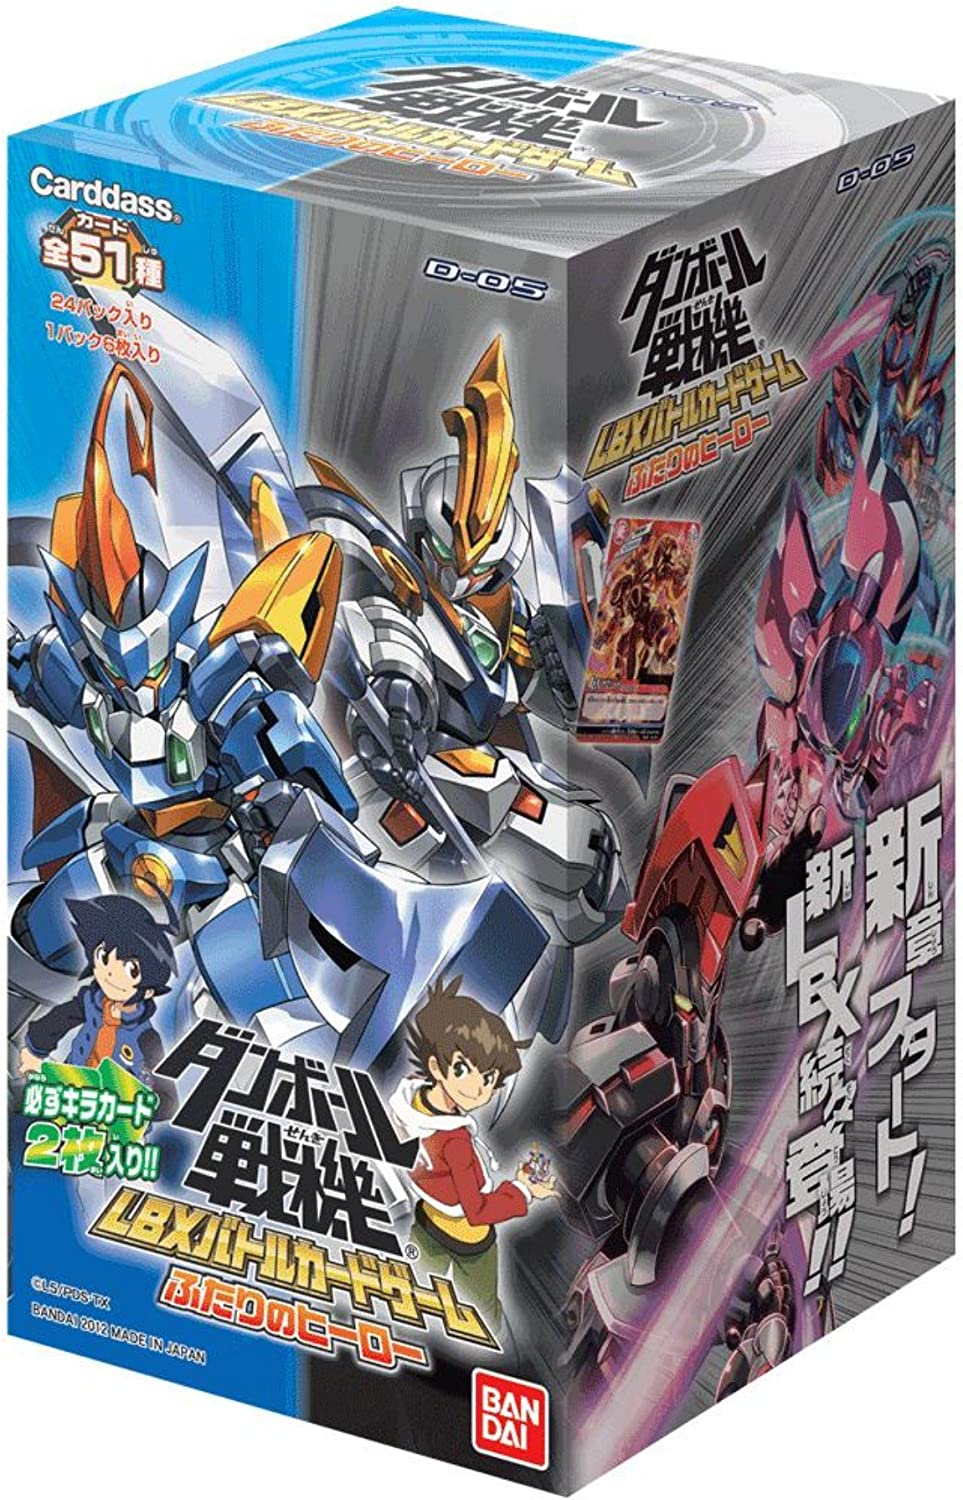 alta calidad Little Battlers eXperience - LBX Battle Coched Juego Booster Pack Pack Pack Vol. 5 D-05 (24packs) (japan import)  el más barato